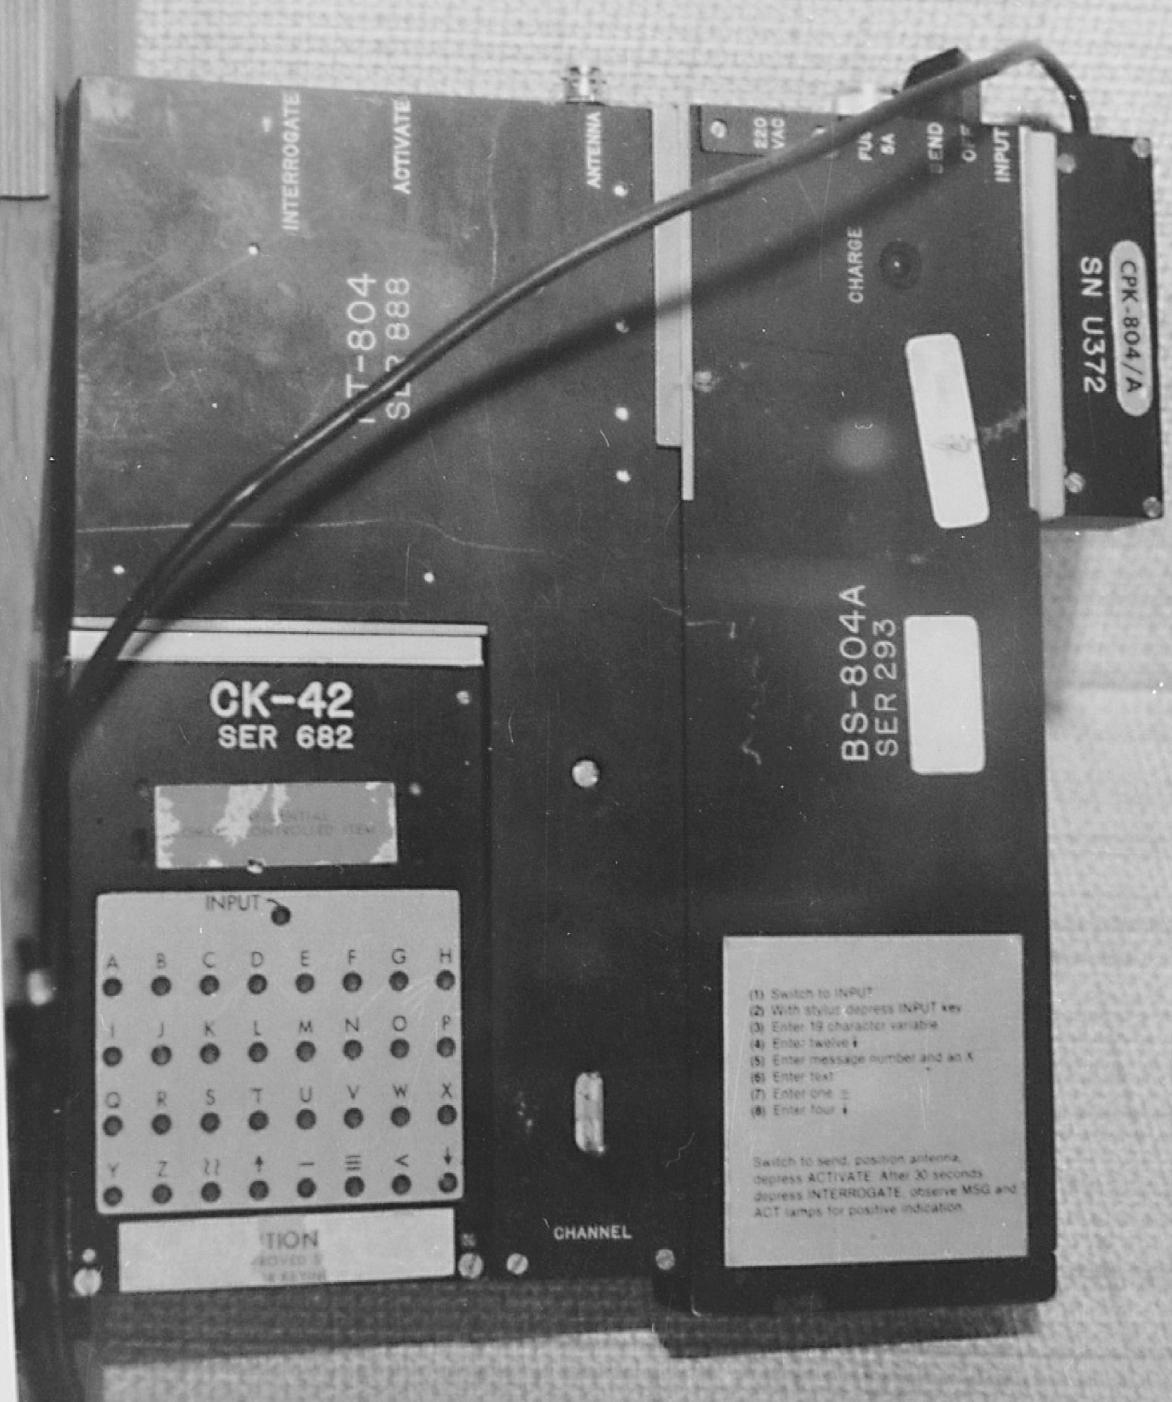 Complete RS-804 set with antenna, as photographed by the KGB [3]. Photograph kindly supplied by Detlev Vreisleben [2].